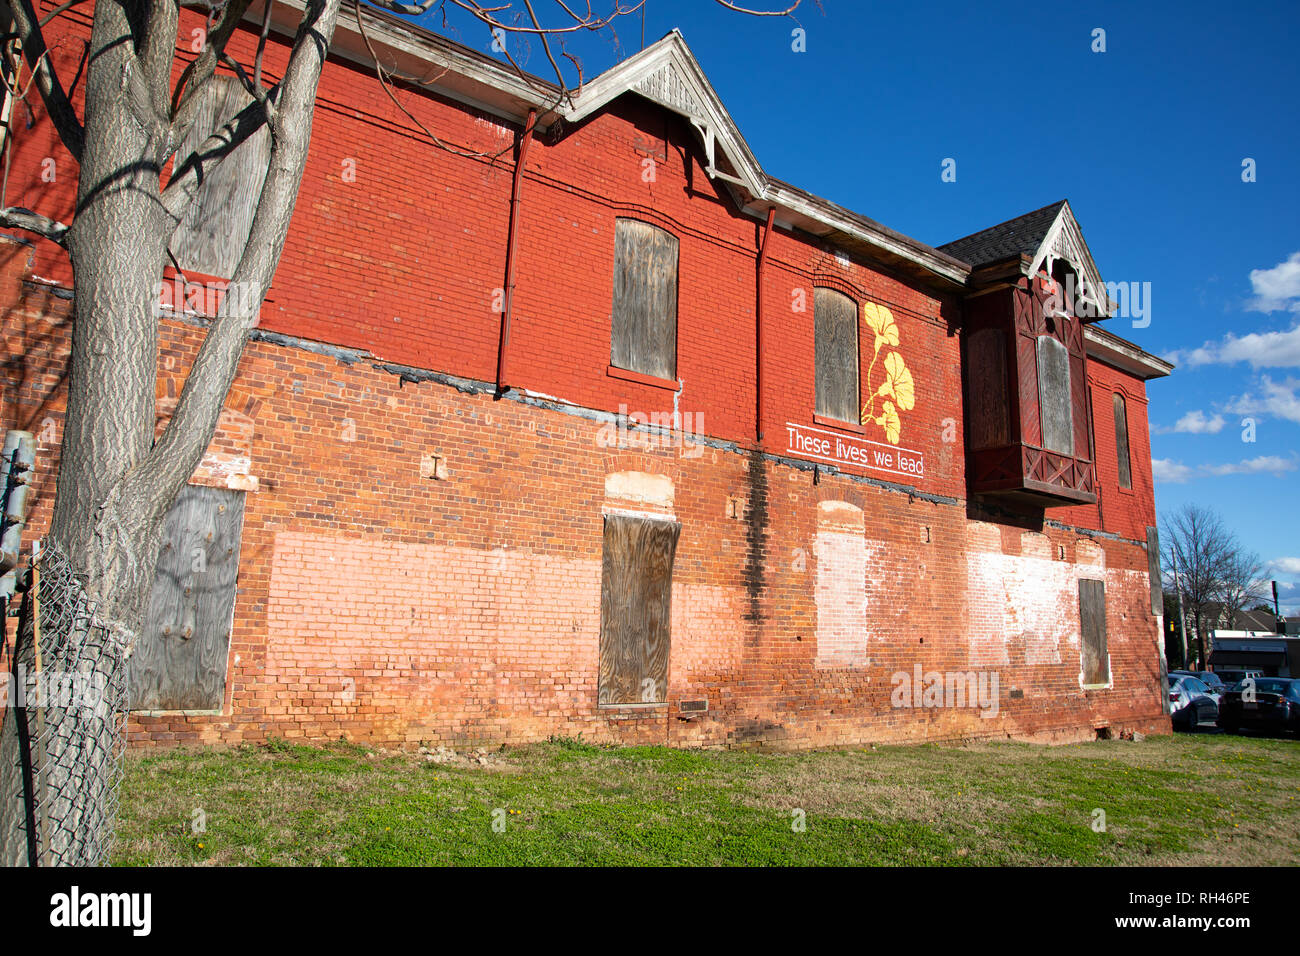 CHARLOTTE, NC, USA-1/24/19: Built in 1887, this vacant Victorian home is the last standing rowhouse in Charlotte. This is rear view. Front available. - Stock Image